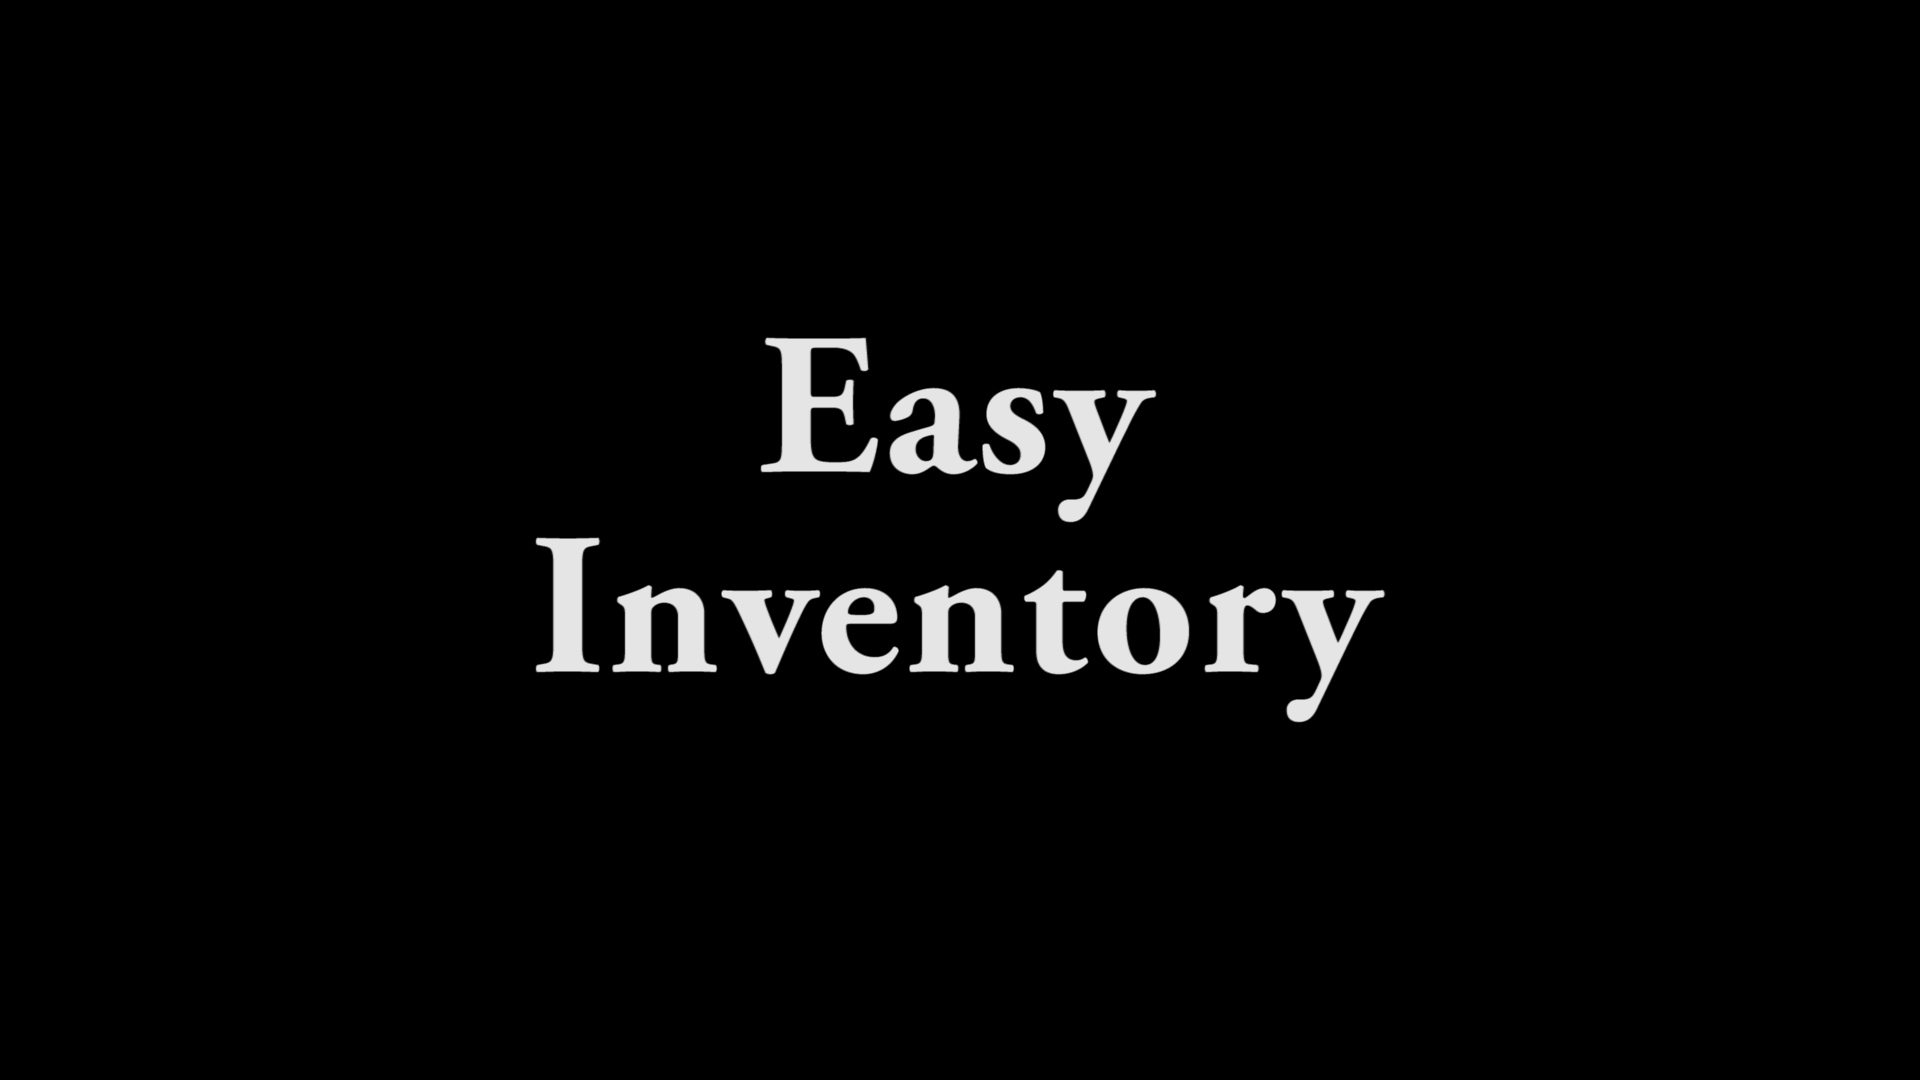 Easy Inventory(modified)